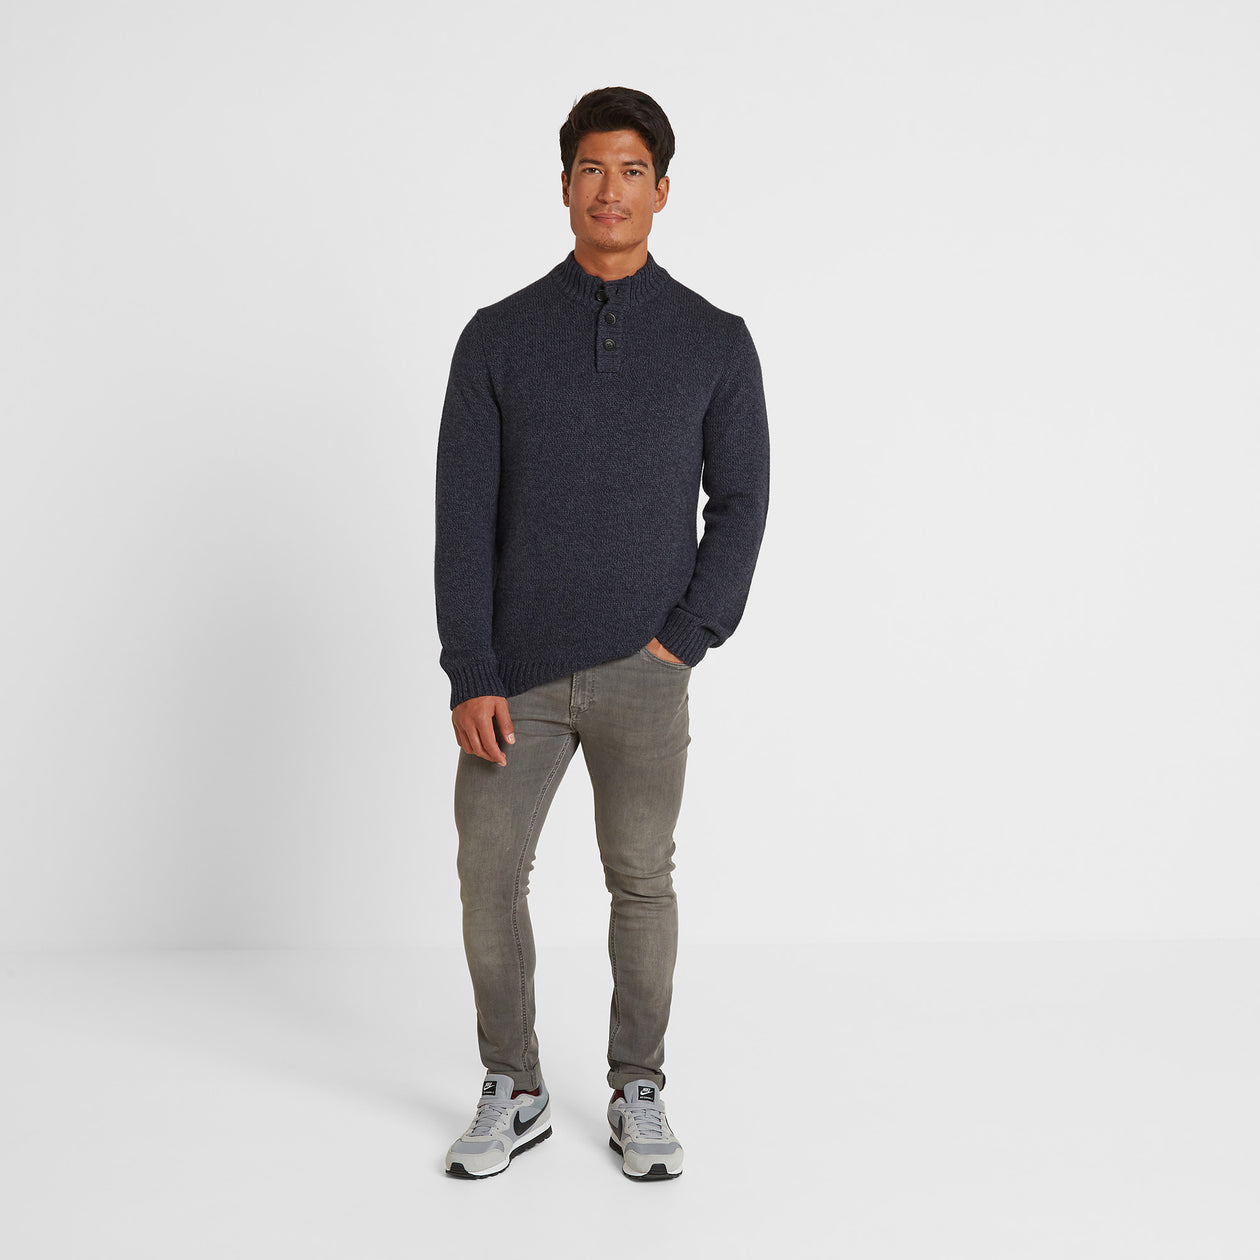 Lawrence Mens Knitted Jumper - Navy Marl image 4